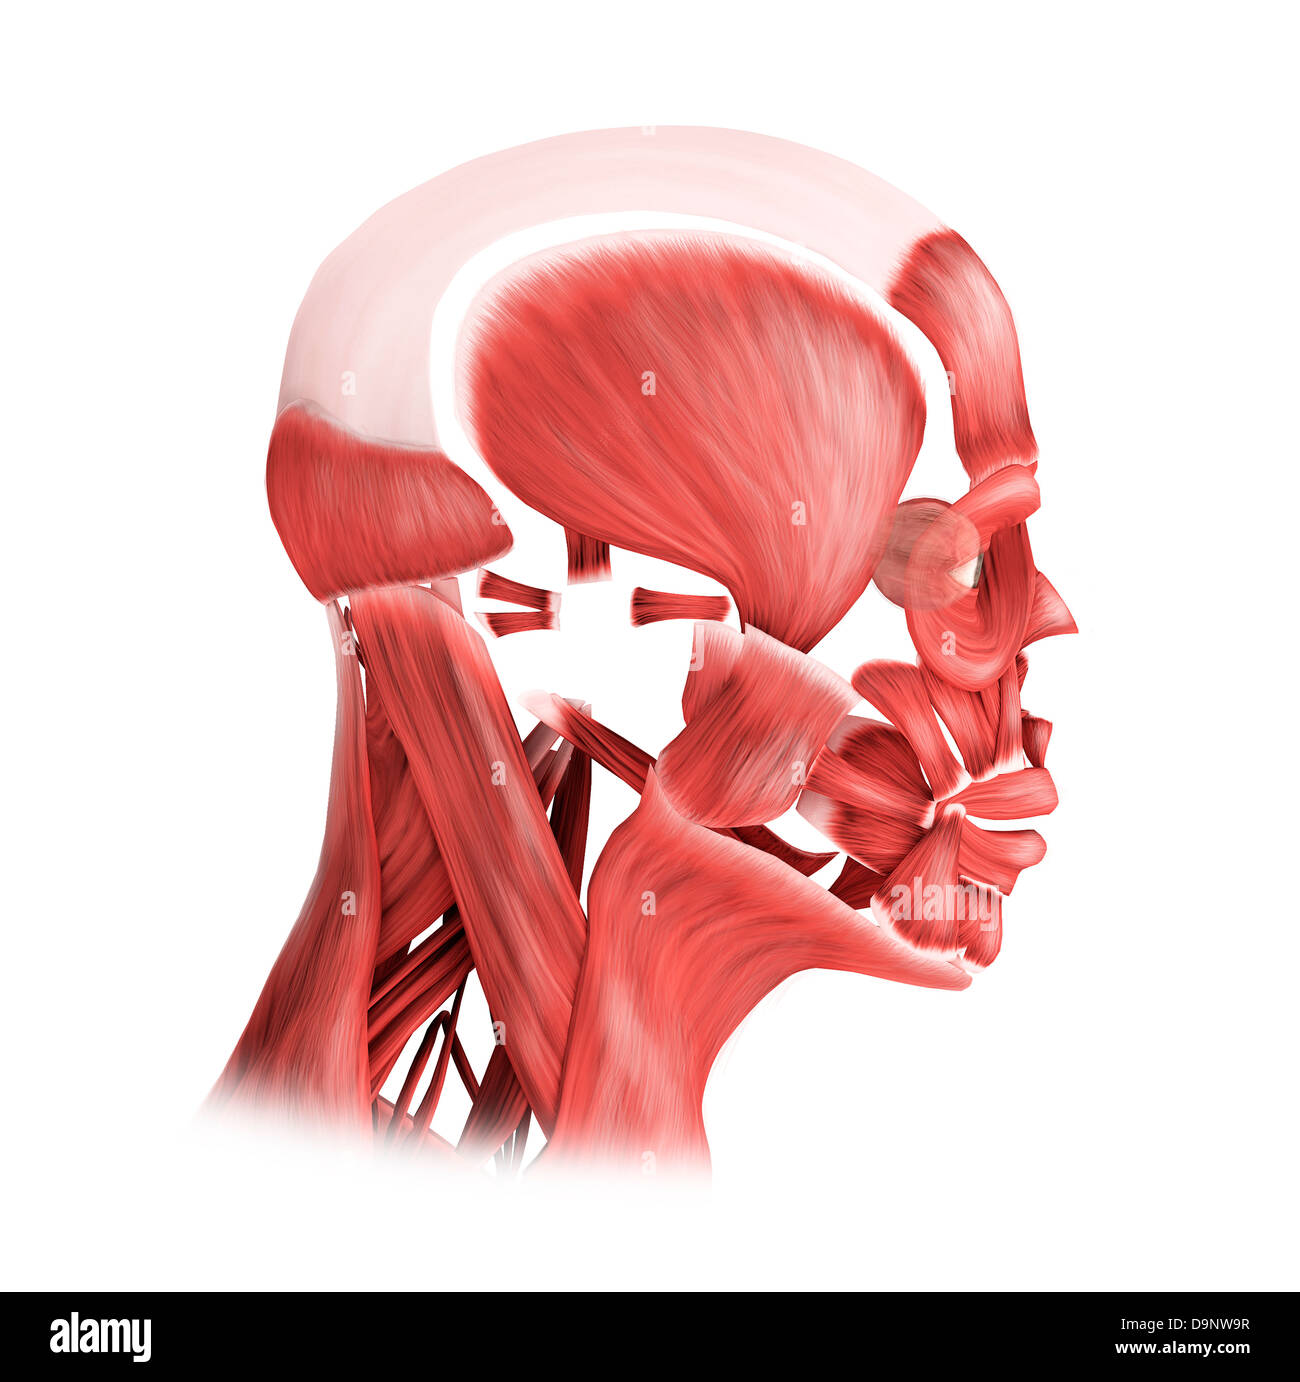 Medical illustration of male facial muscles, side view. Stock Photo